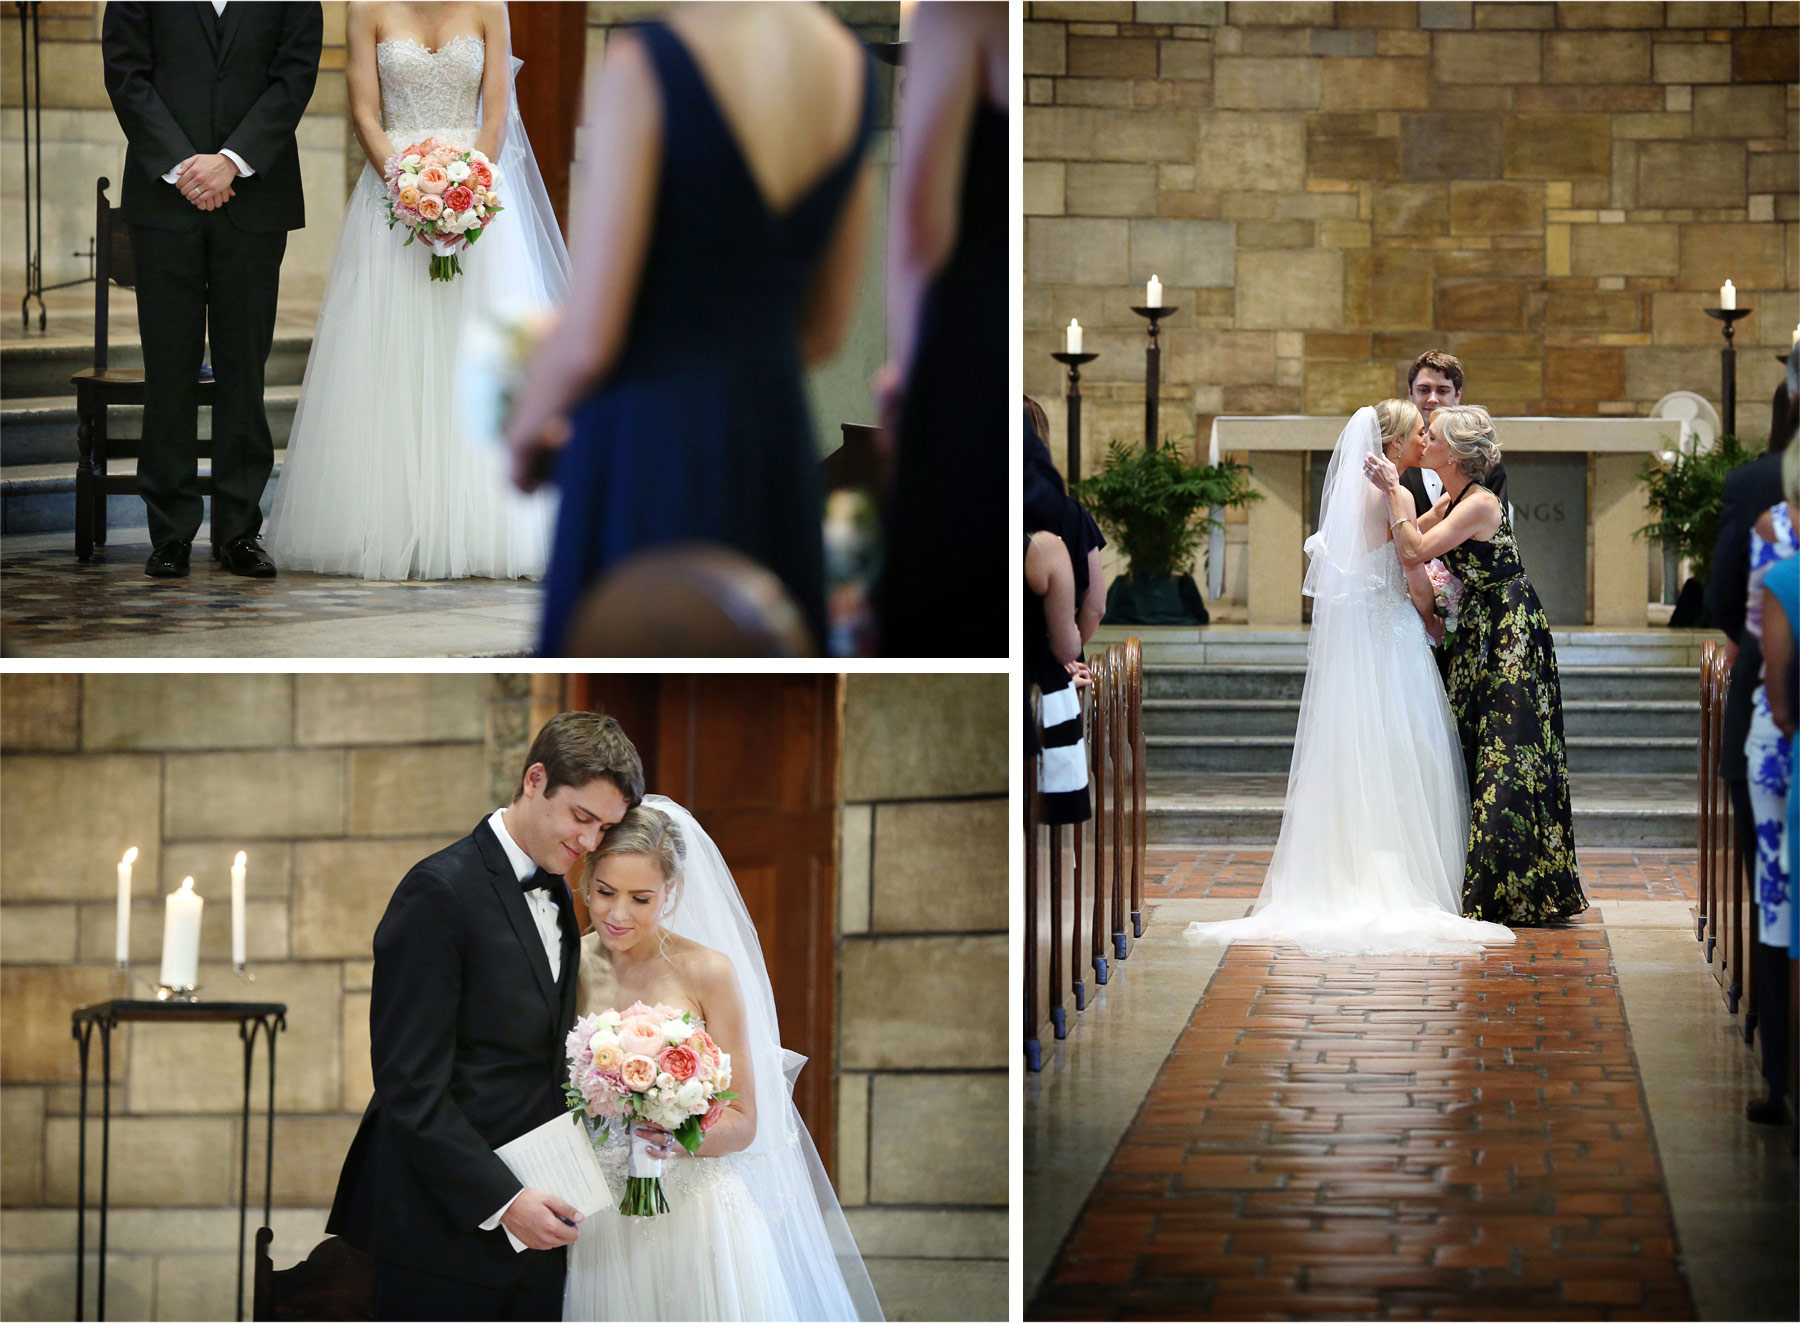 14-Saint-Paul-Minnesota-Wedding-Photographer-by-Andrew-Vick-Photography-Summer-Our-Lady-Of-Victory-Chapel-Church-Ceremony-Bride-Groom-Flowers-Embrace-Vows-Mother-Parents-Kiss-Michelle-and-Kevin.jpg